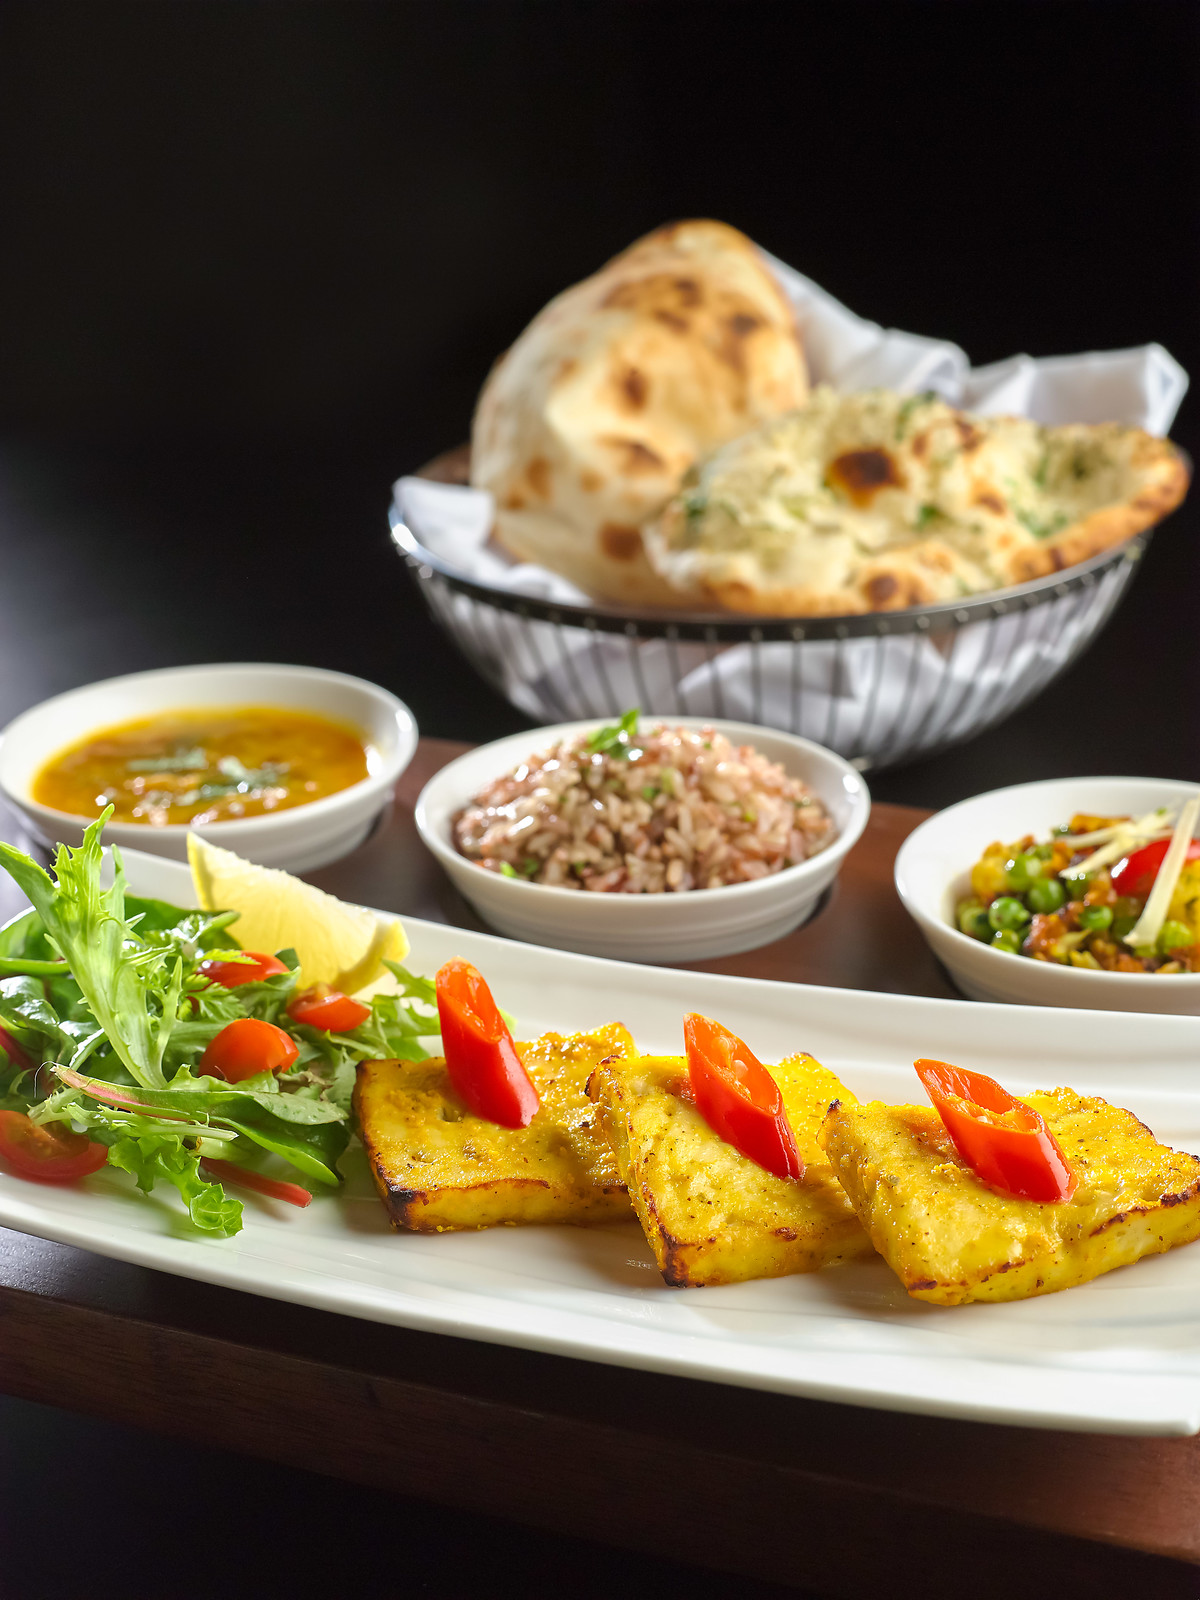 Indian Restaurants: Executive Set - Vegetarian (2)